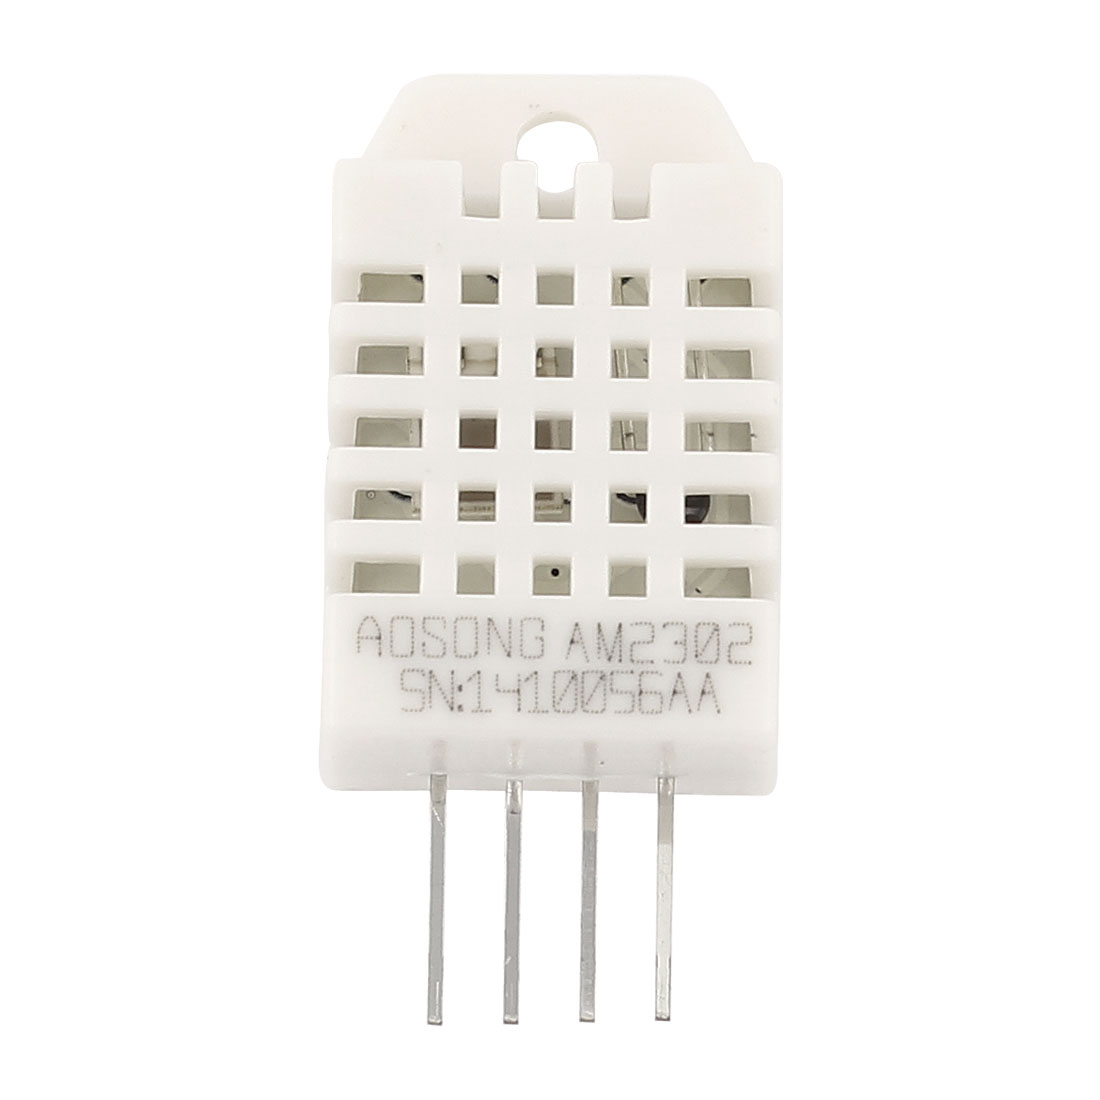 DHT22 AM2302 Digital Temperature Humidity Sensor for SHT11 SHT15